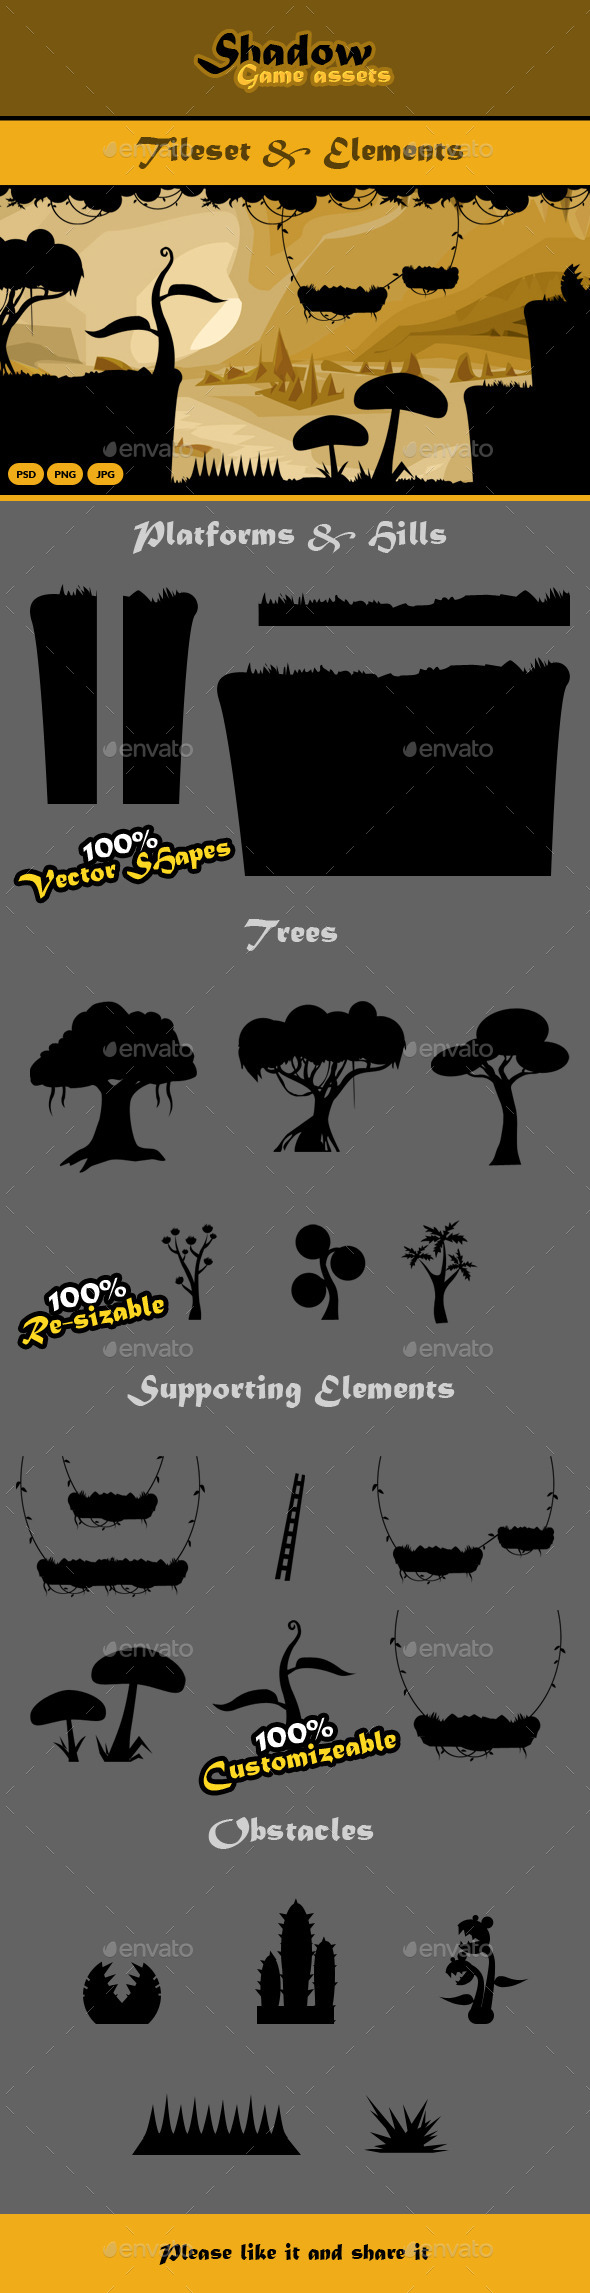 Shadow Game Assets: Tileset & Obstacles   - Tilesets Game Assets